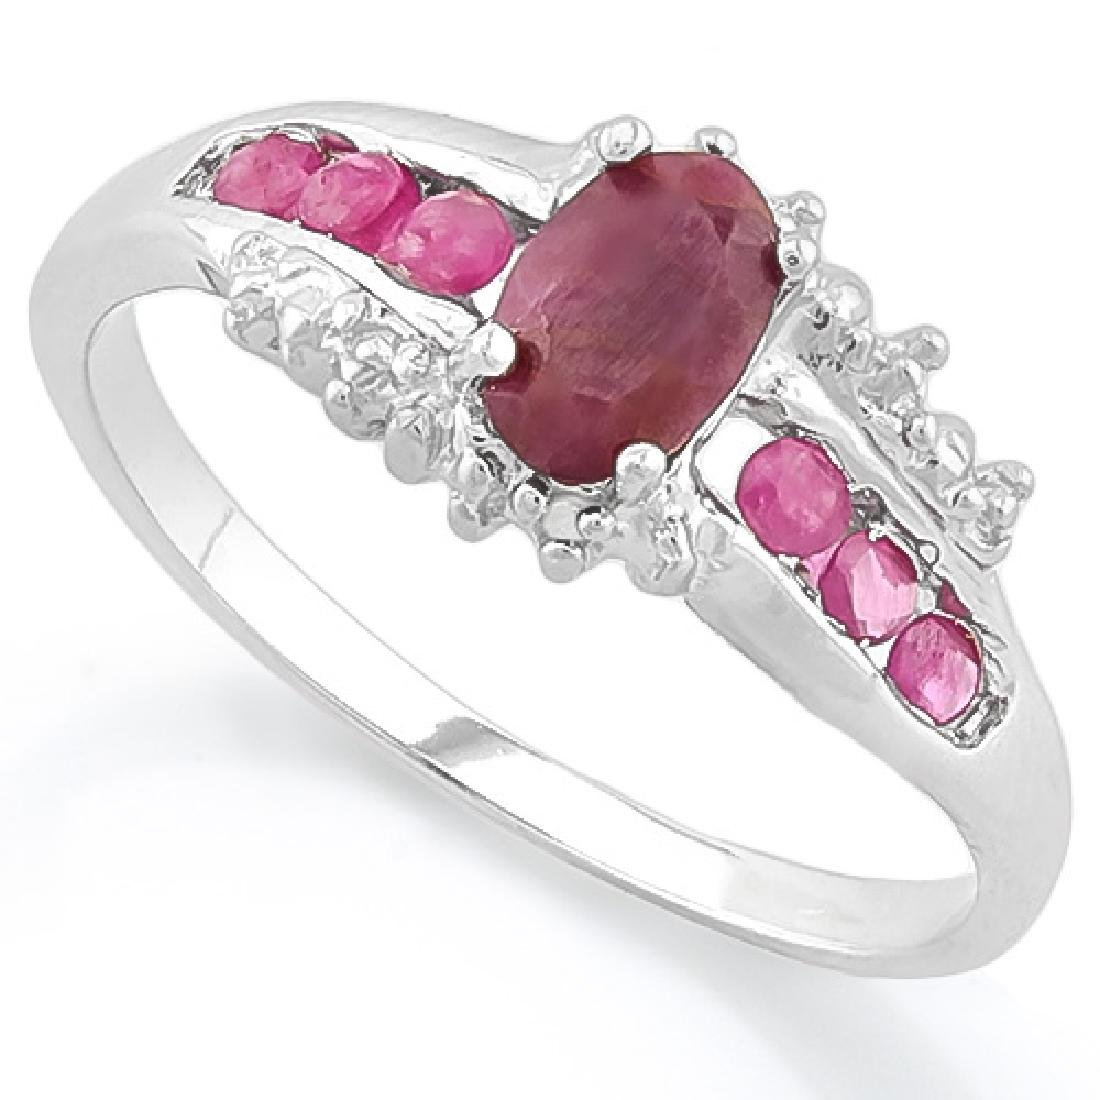 ANTIQUE STYLE GENUINE RUBY STERLING ESTATE RING